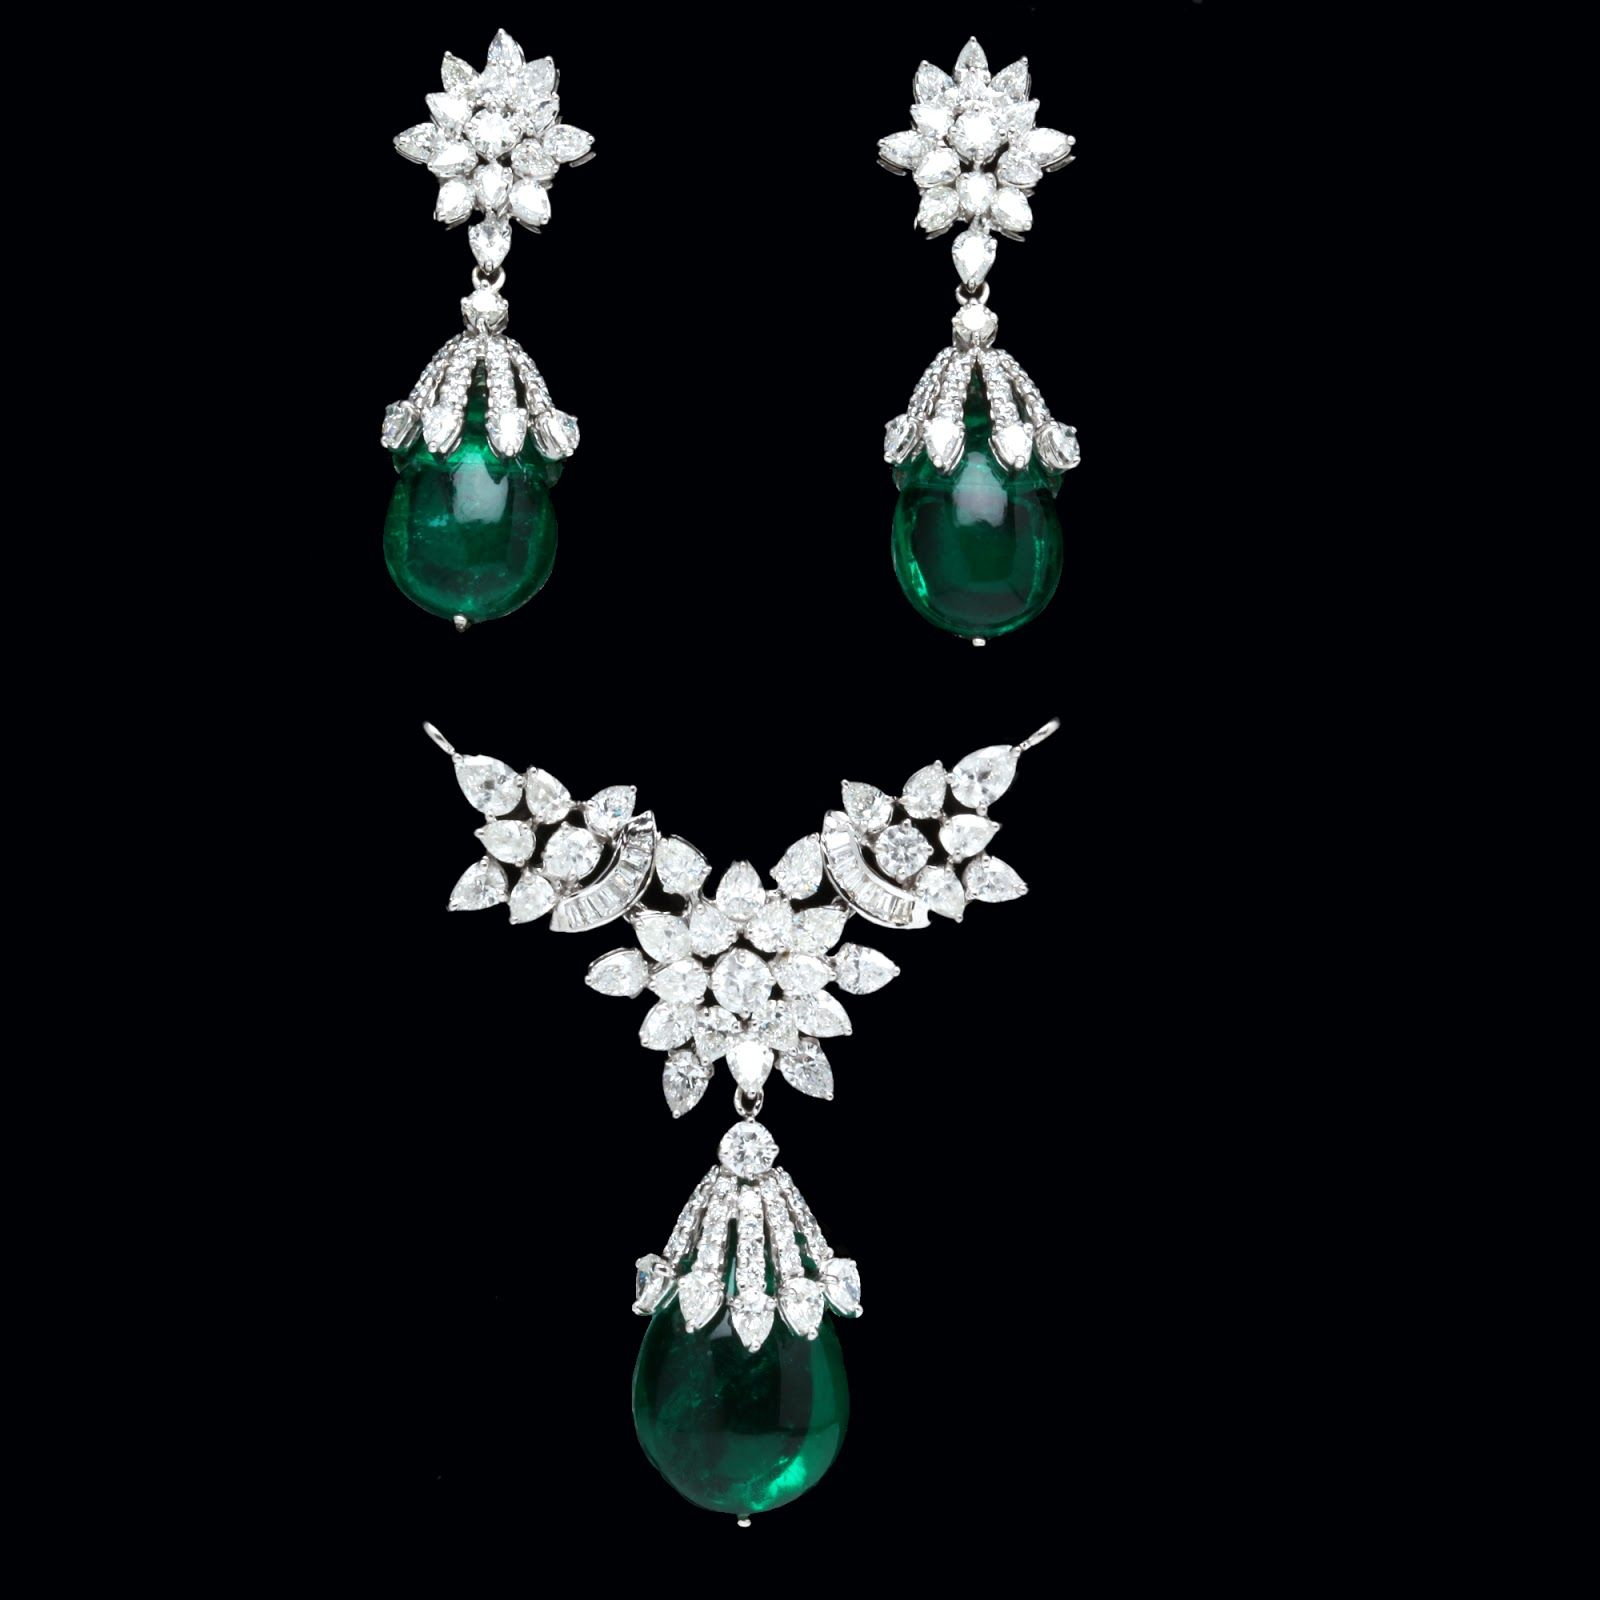 Pcg jewelry pinterest indian jewelry emeralds